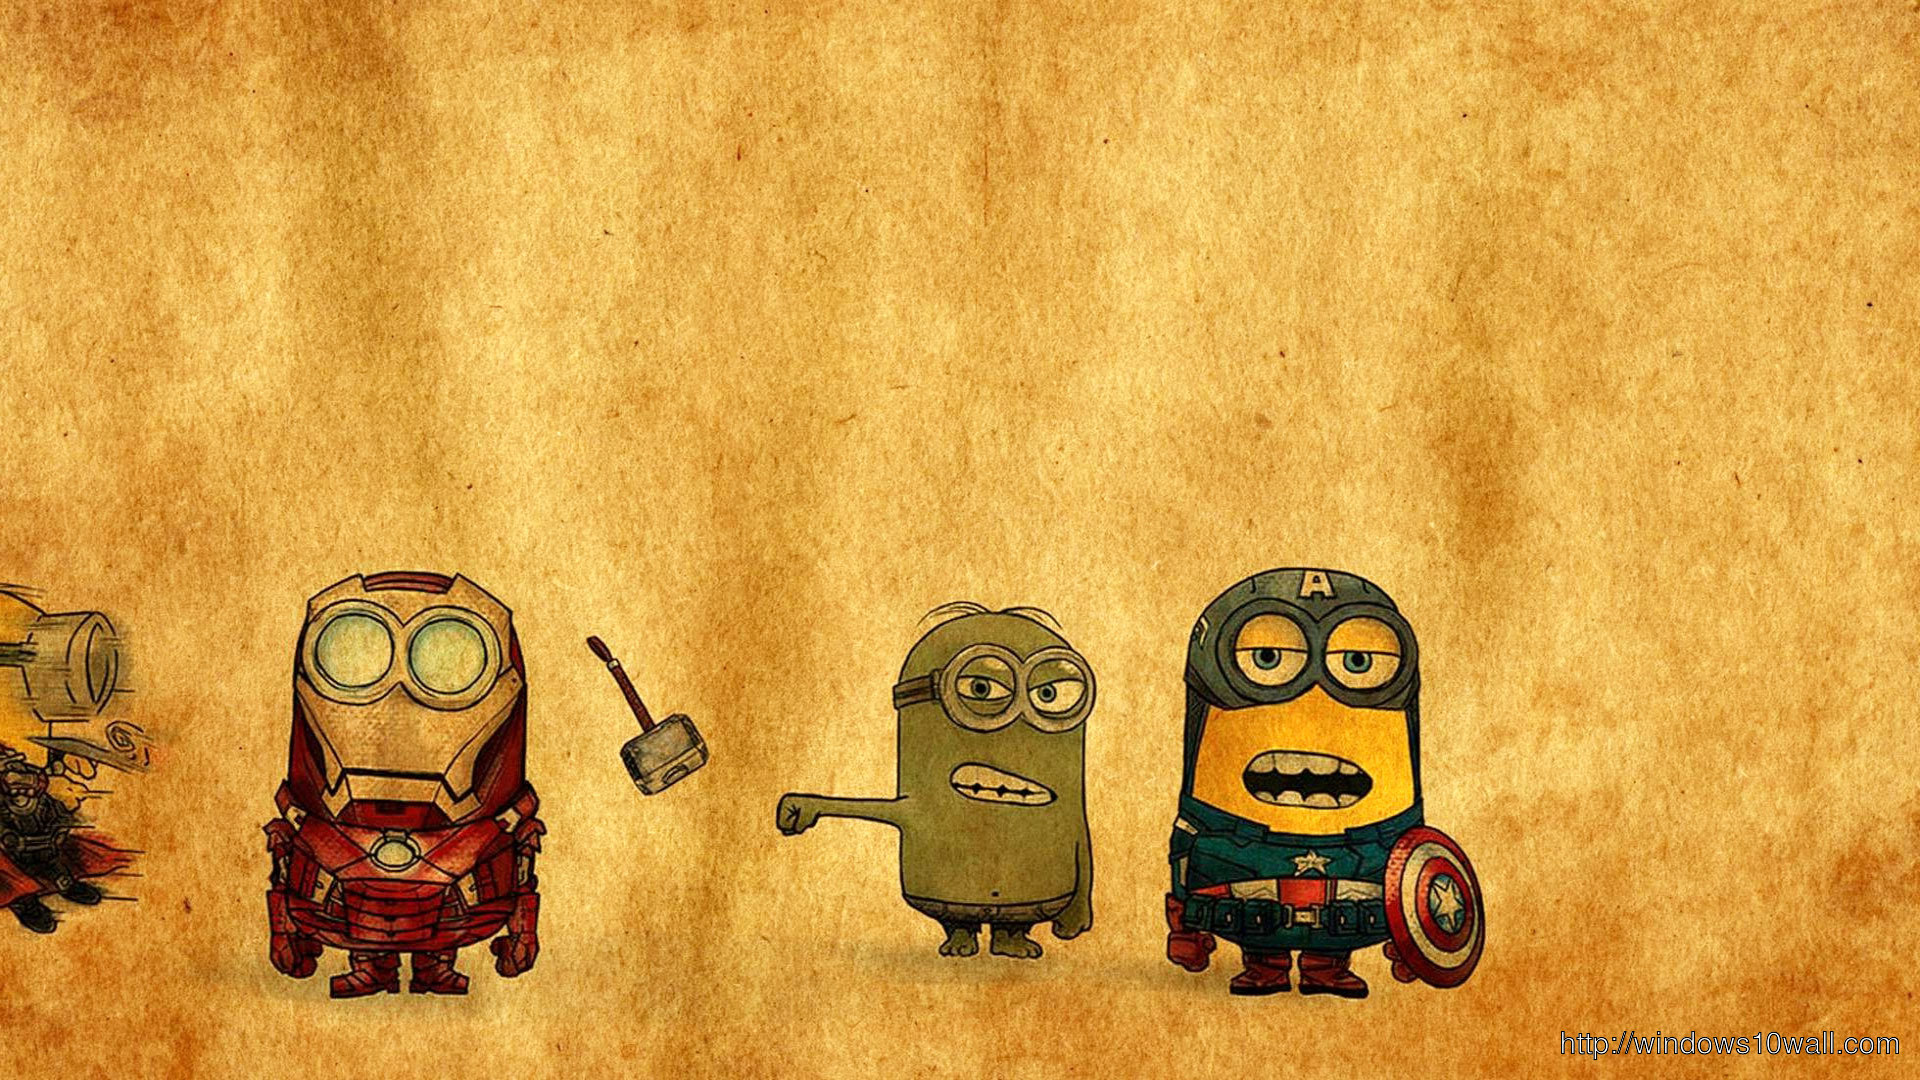 Minions Avengers Background Wallpaper on hello world baby